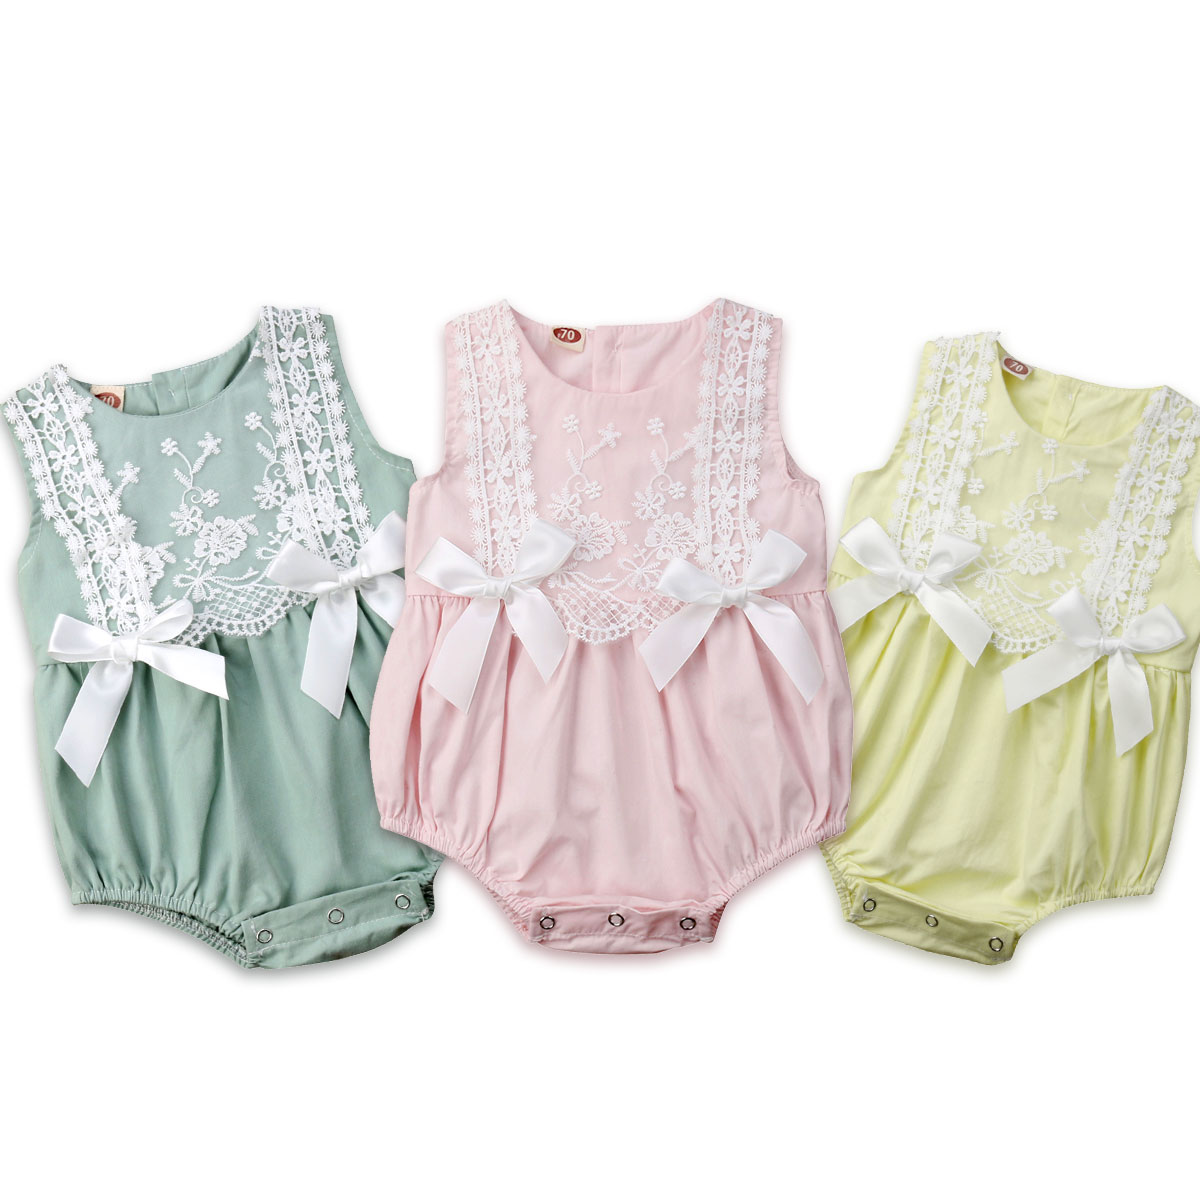 bc5db3e5e Buy newborn lace romper and get free shipping on AliExpress.com